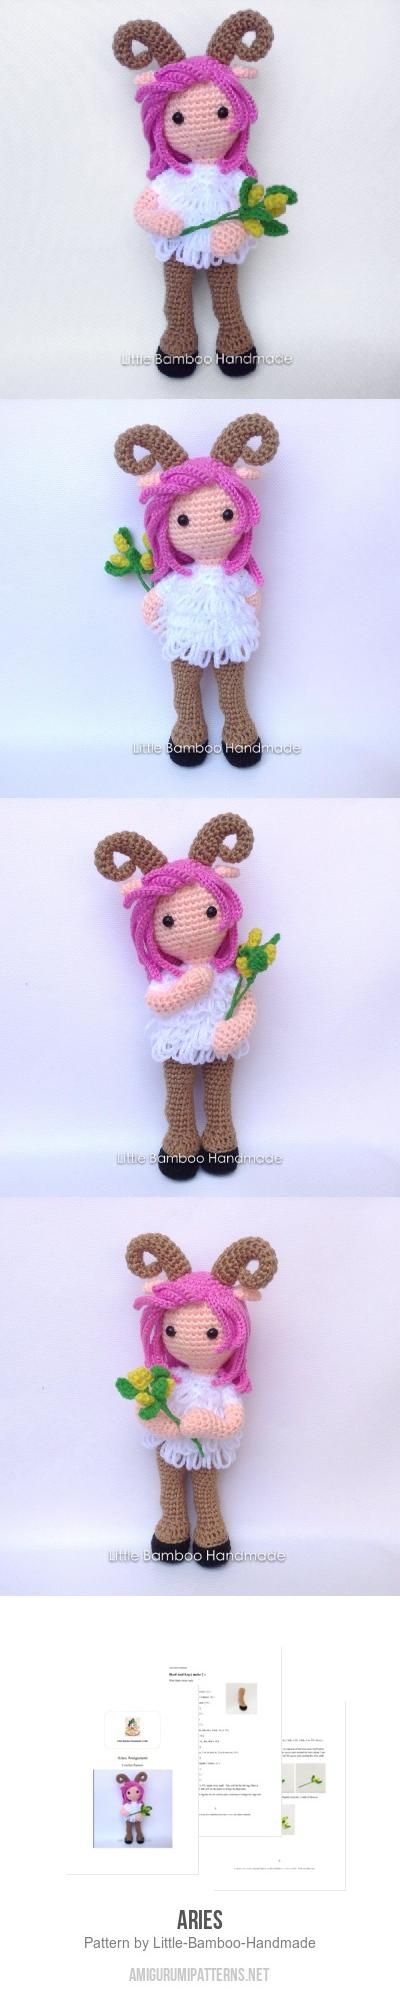 Aries Amigurumi Pattern